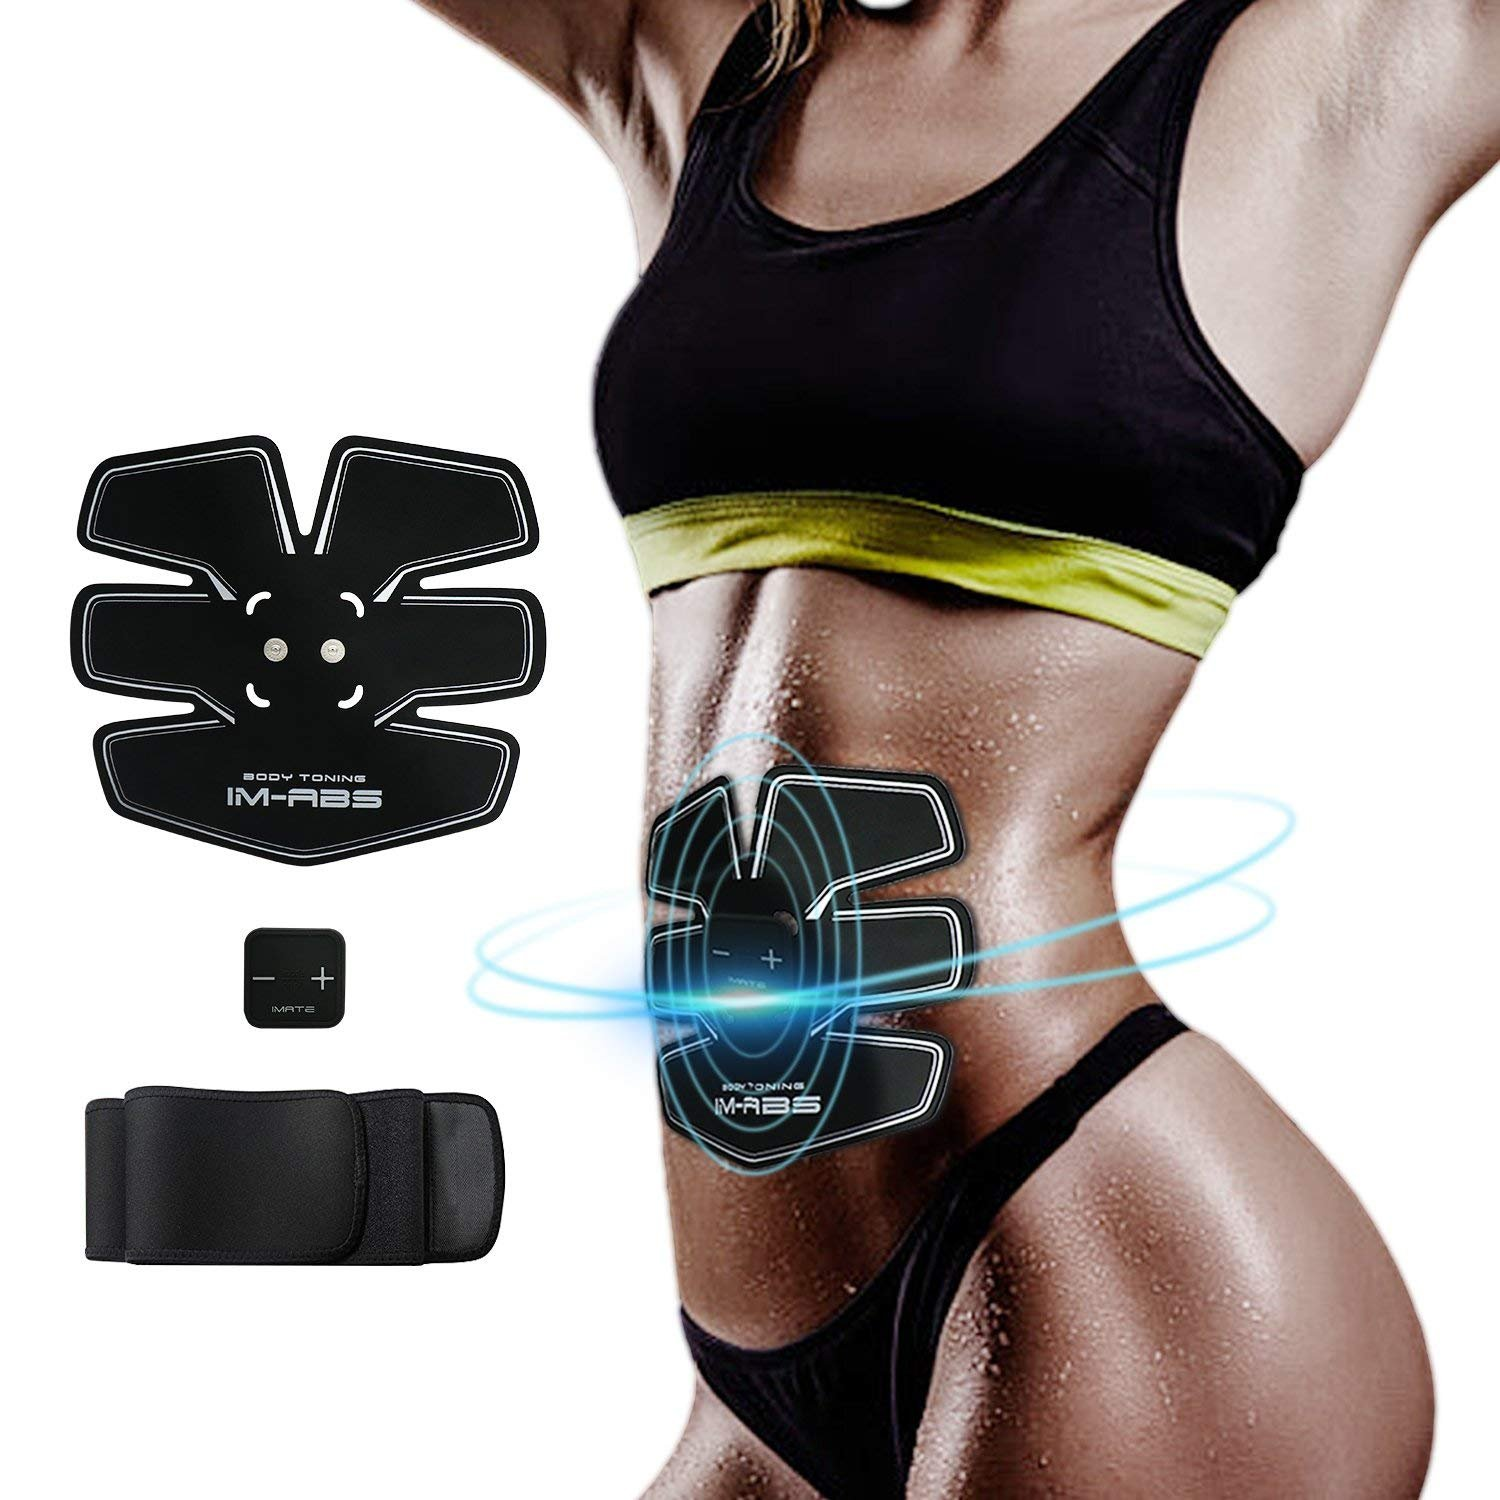 a437dd9c42 IMATE Abdominal Muscle Trainer EMS Abs Trainer Muscle Stimulator Ab Toning Belt  Waist Trainer Belly Support Belt Gym Training Exercise Machine Home Fitness  ...